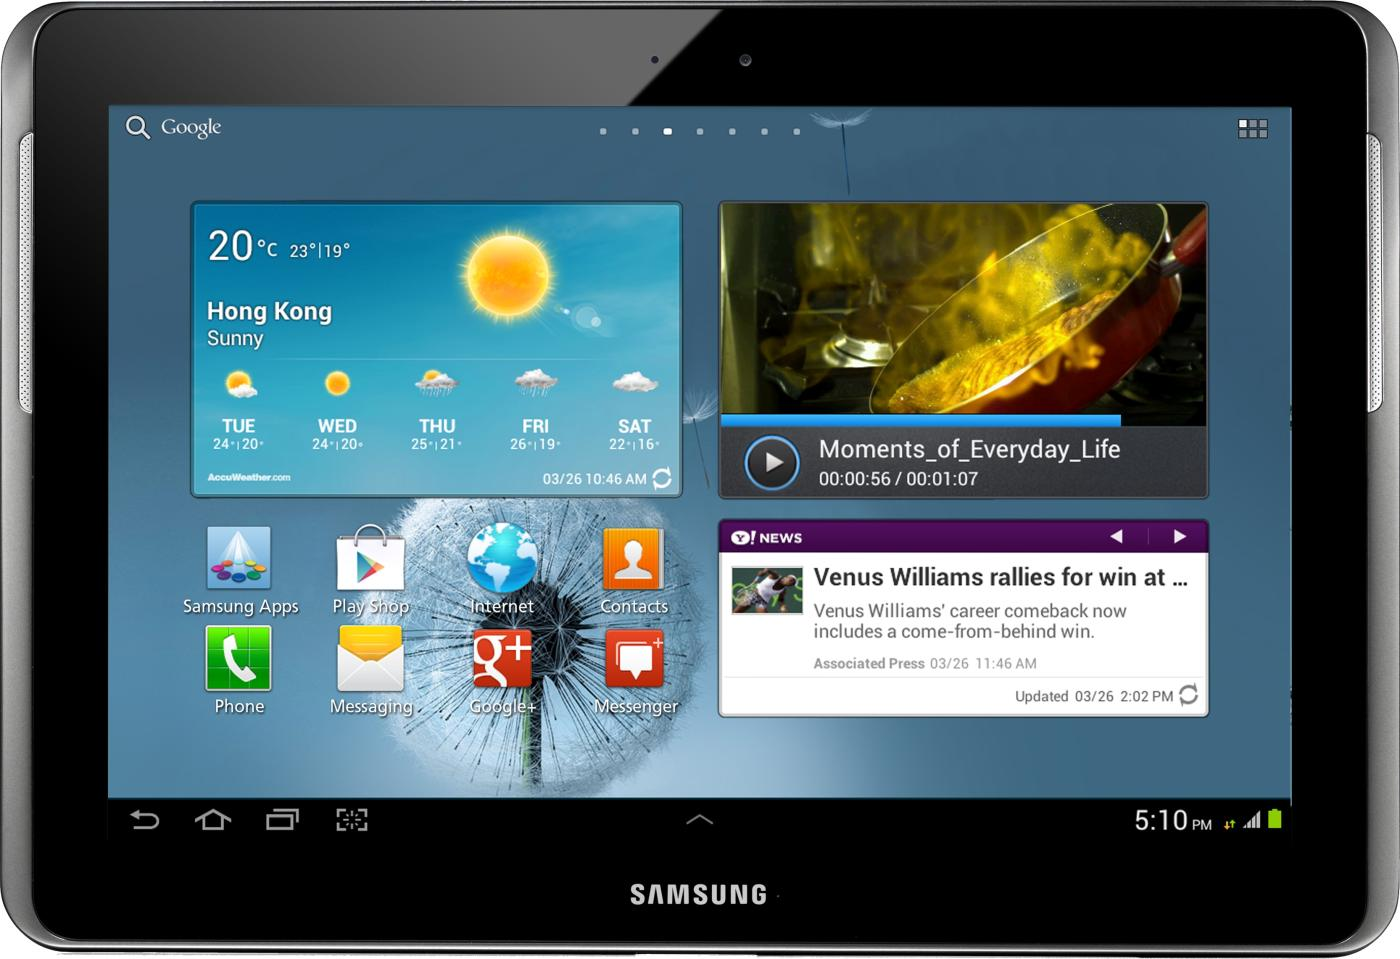 Tablet samsung galaxy 3 root the samsung galaxy tab 3 - Tablet Samsung Galaxy 3 Root The Samsung Galaxy Tab 3 15